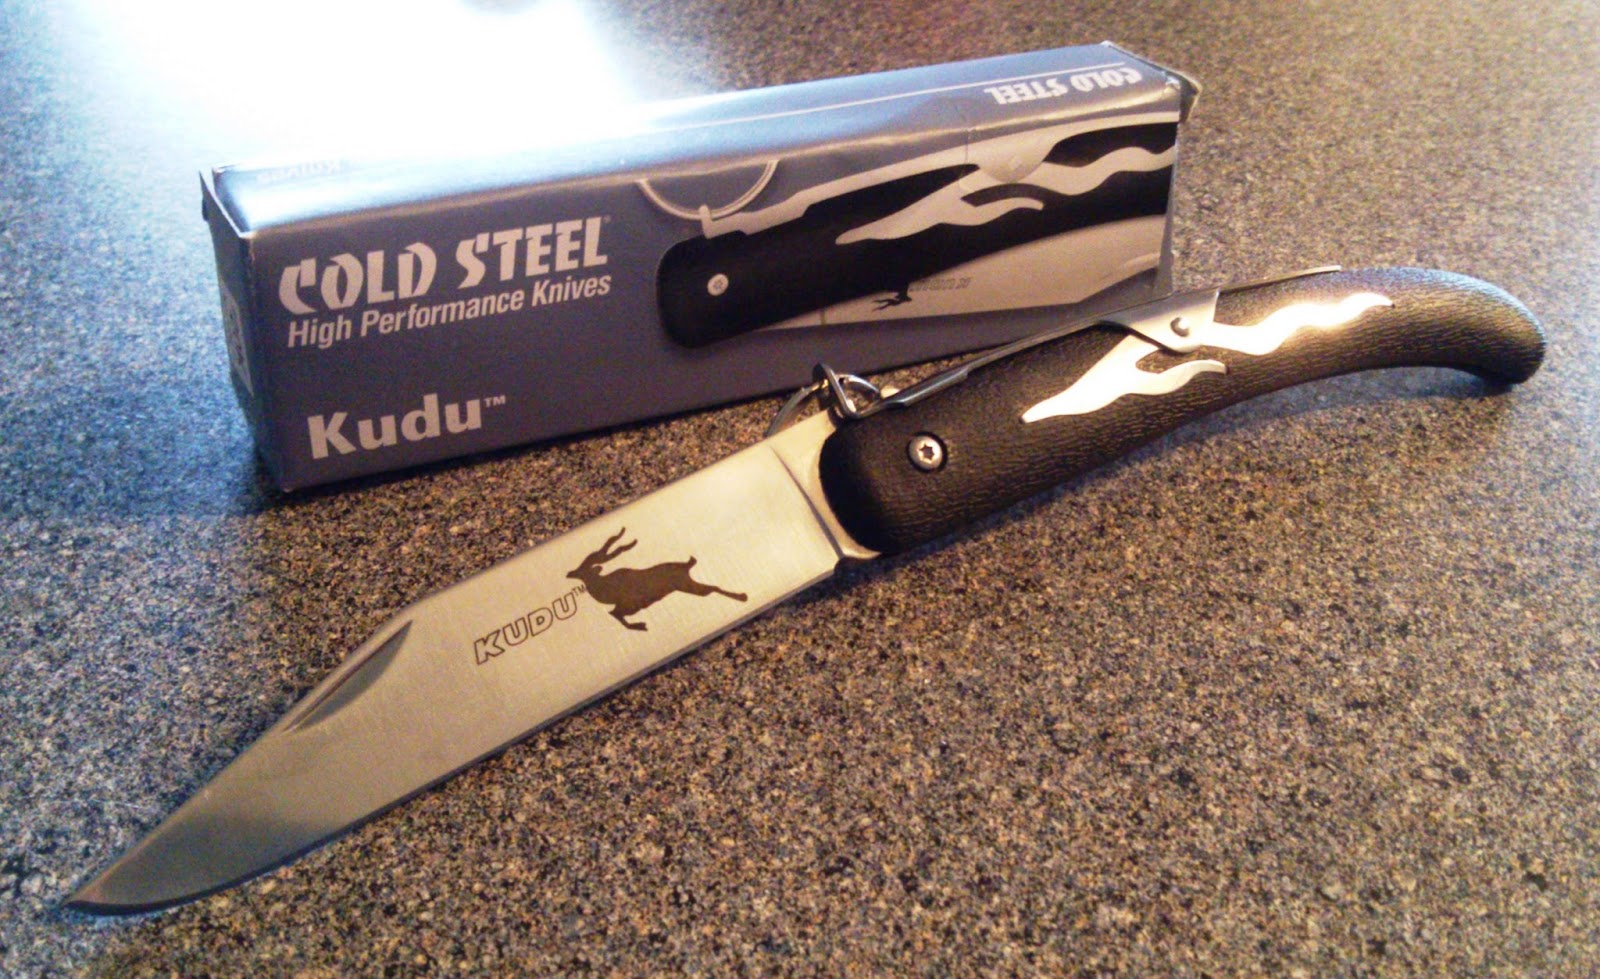 Cold Steel Kudu Knife Review - Father's Day